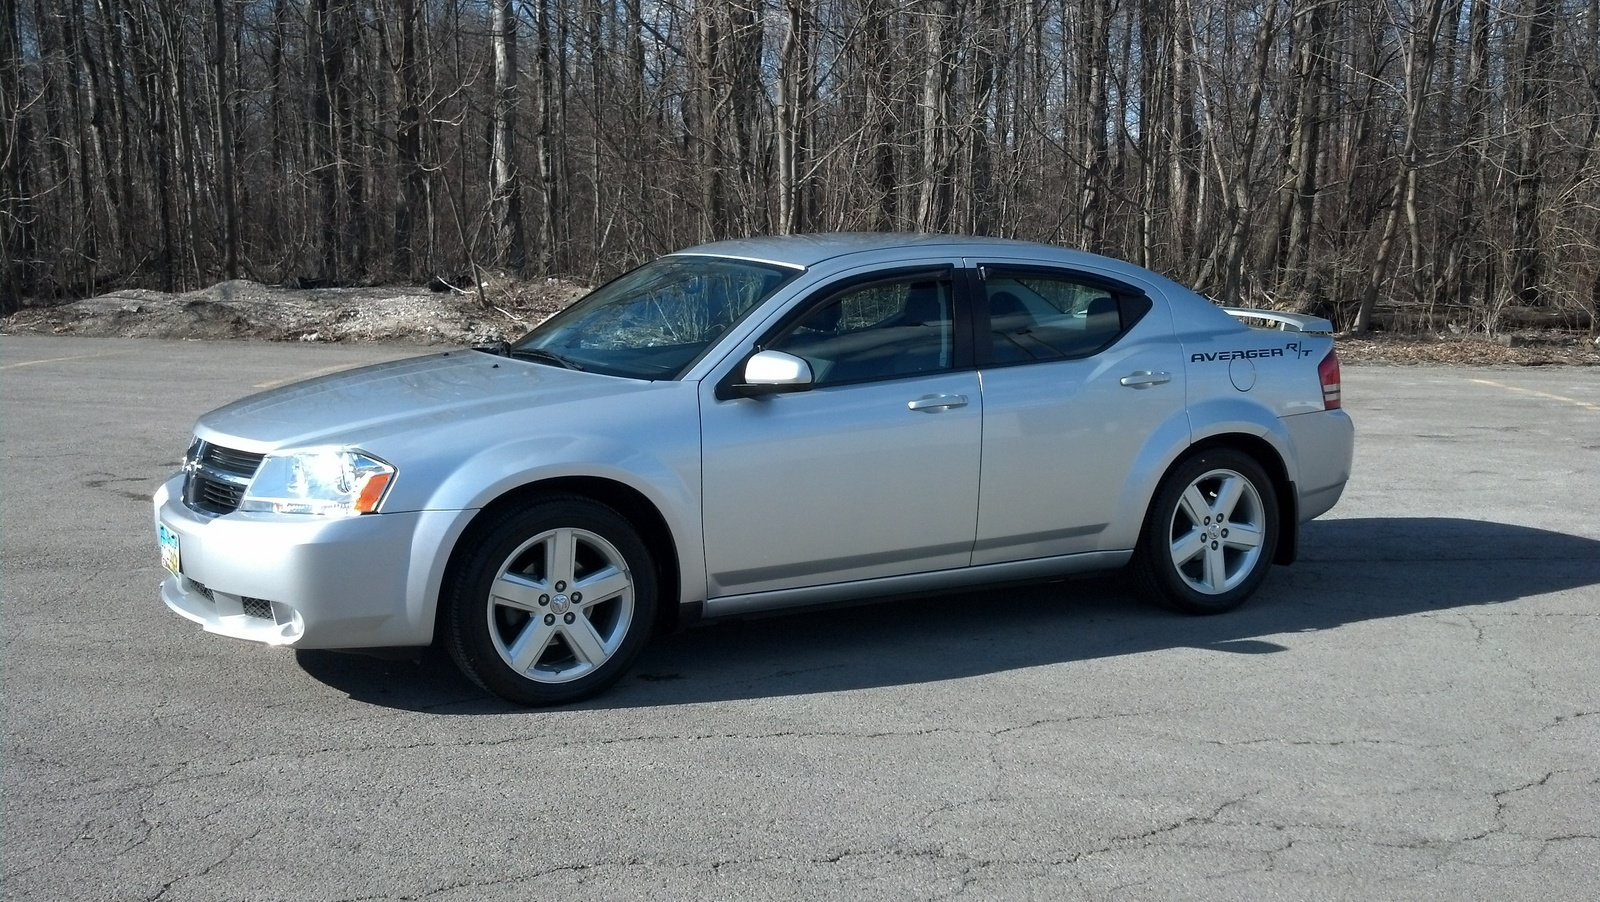 Dodge Avenger R T Pic on 2003 Hyundai Elantra Lighter